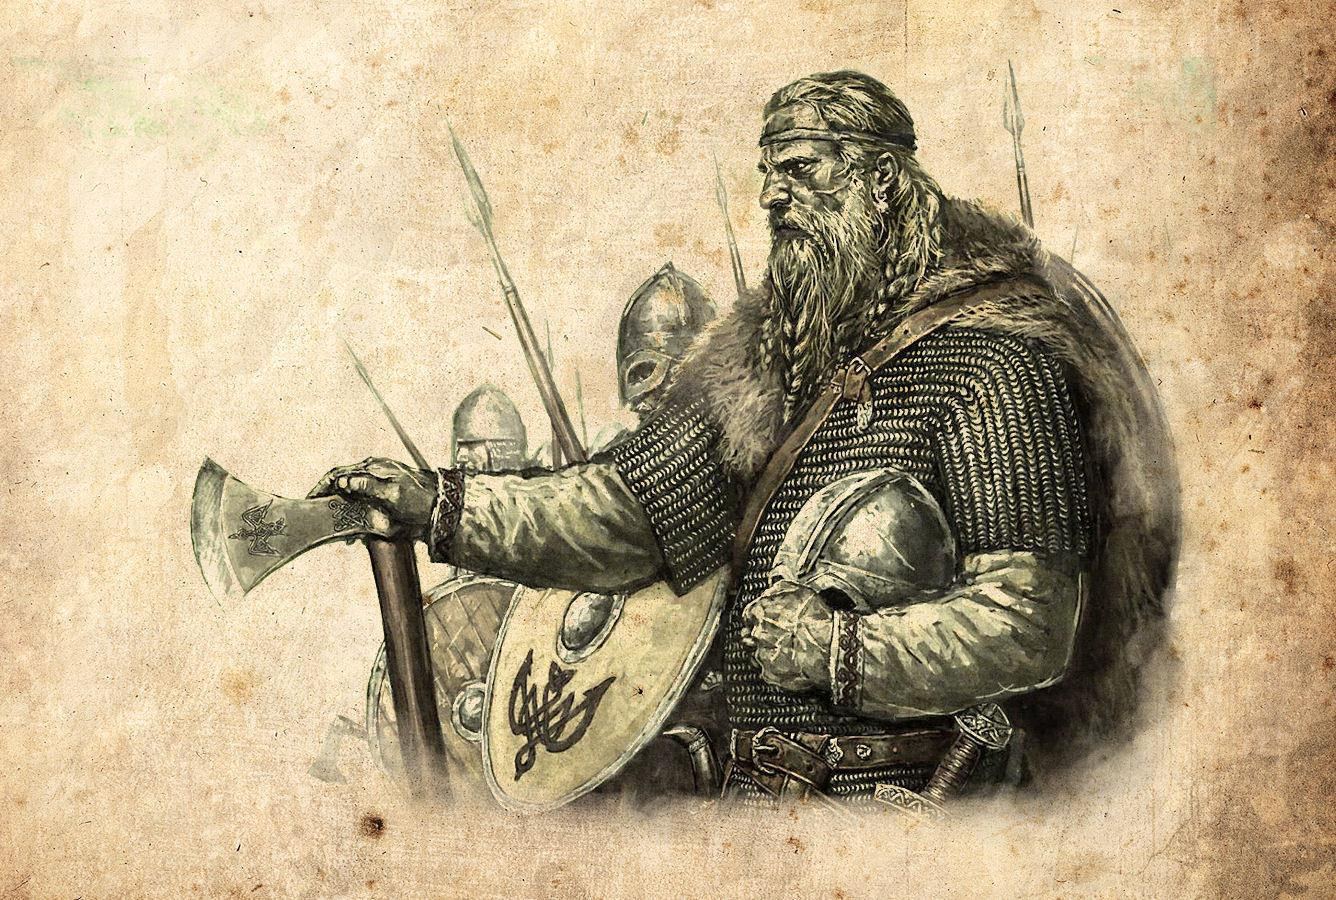 Viking warriors vintage style pencil sketch art silk print poster 24x36inch60x90cm 088